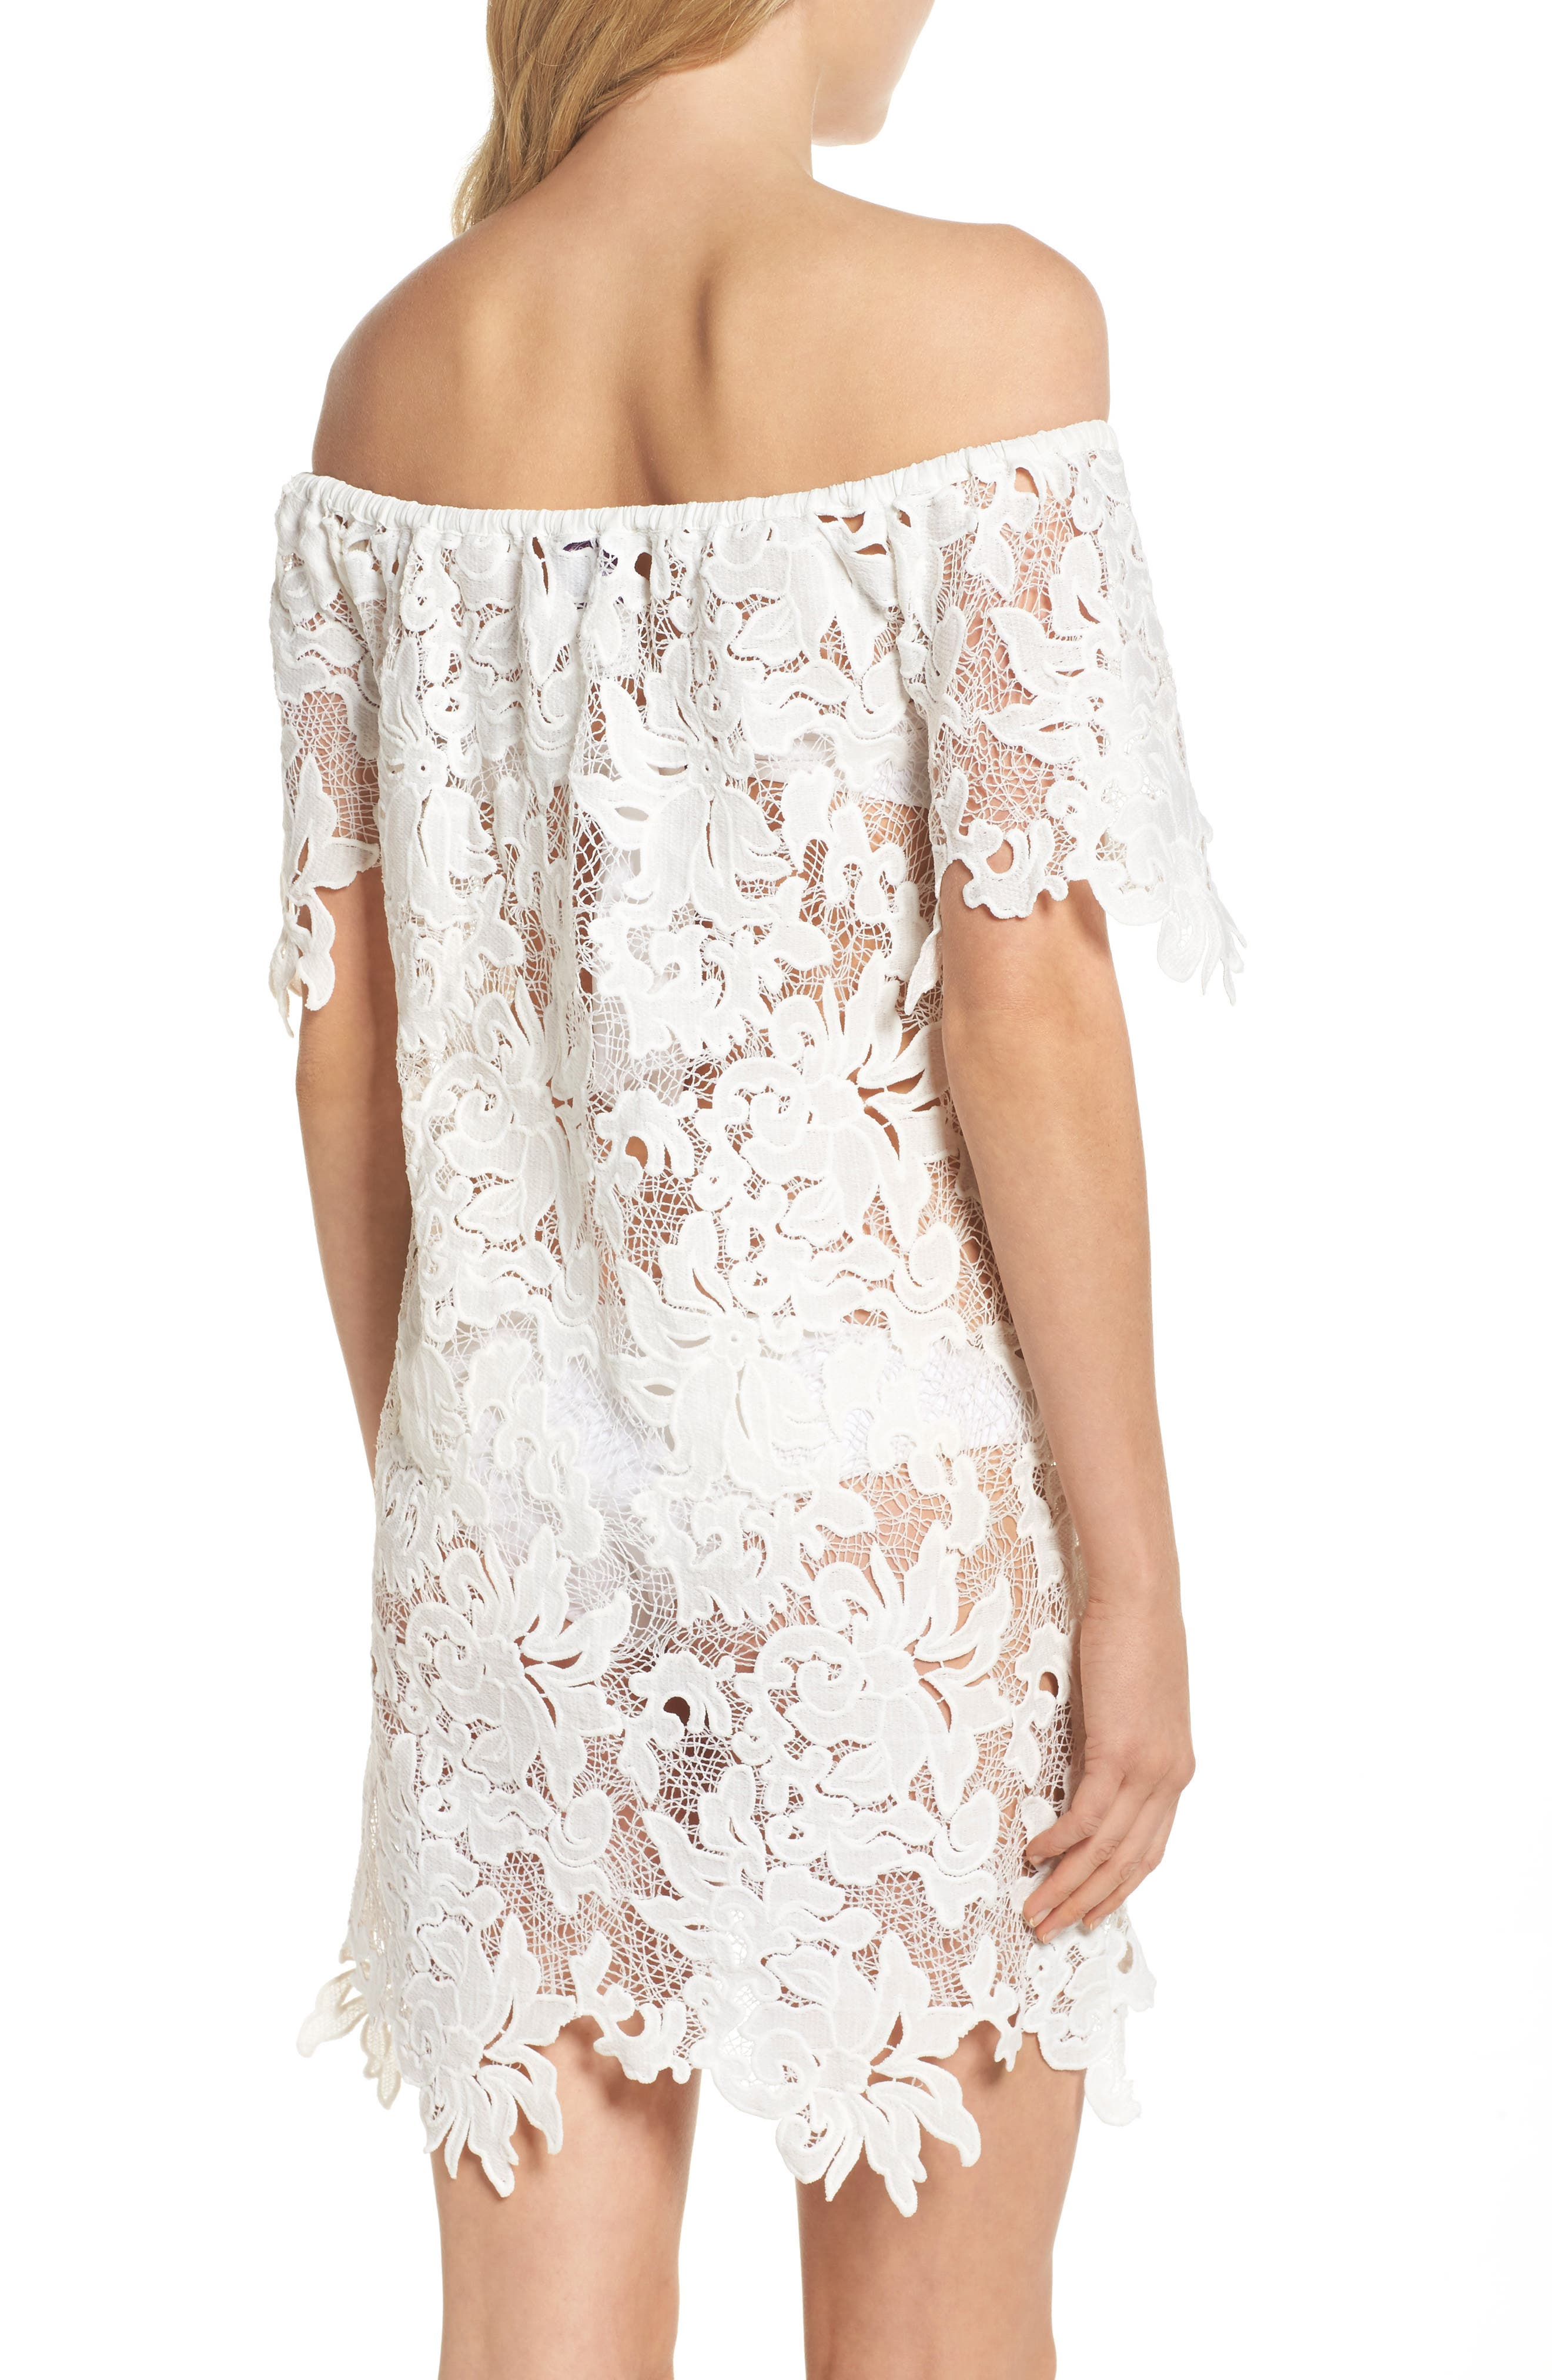 Ode Rosette Lace Cover-Up Dress,                             Alternate thumbnail 2, color,                             100